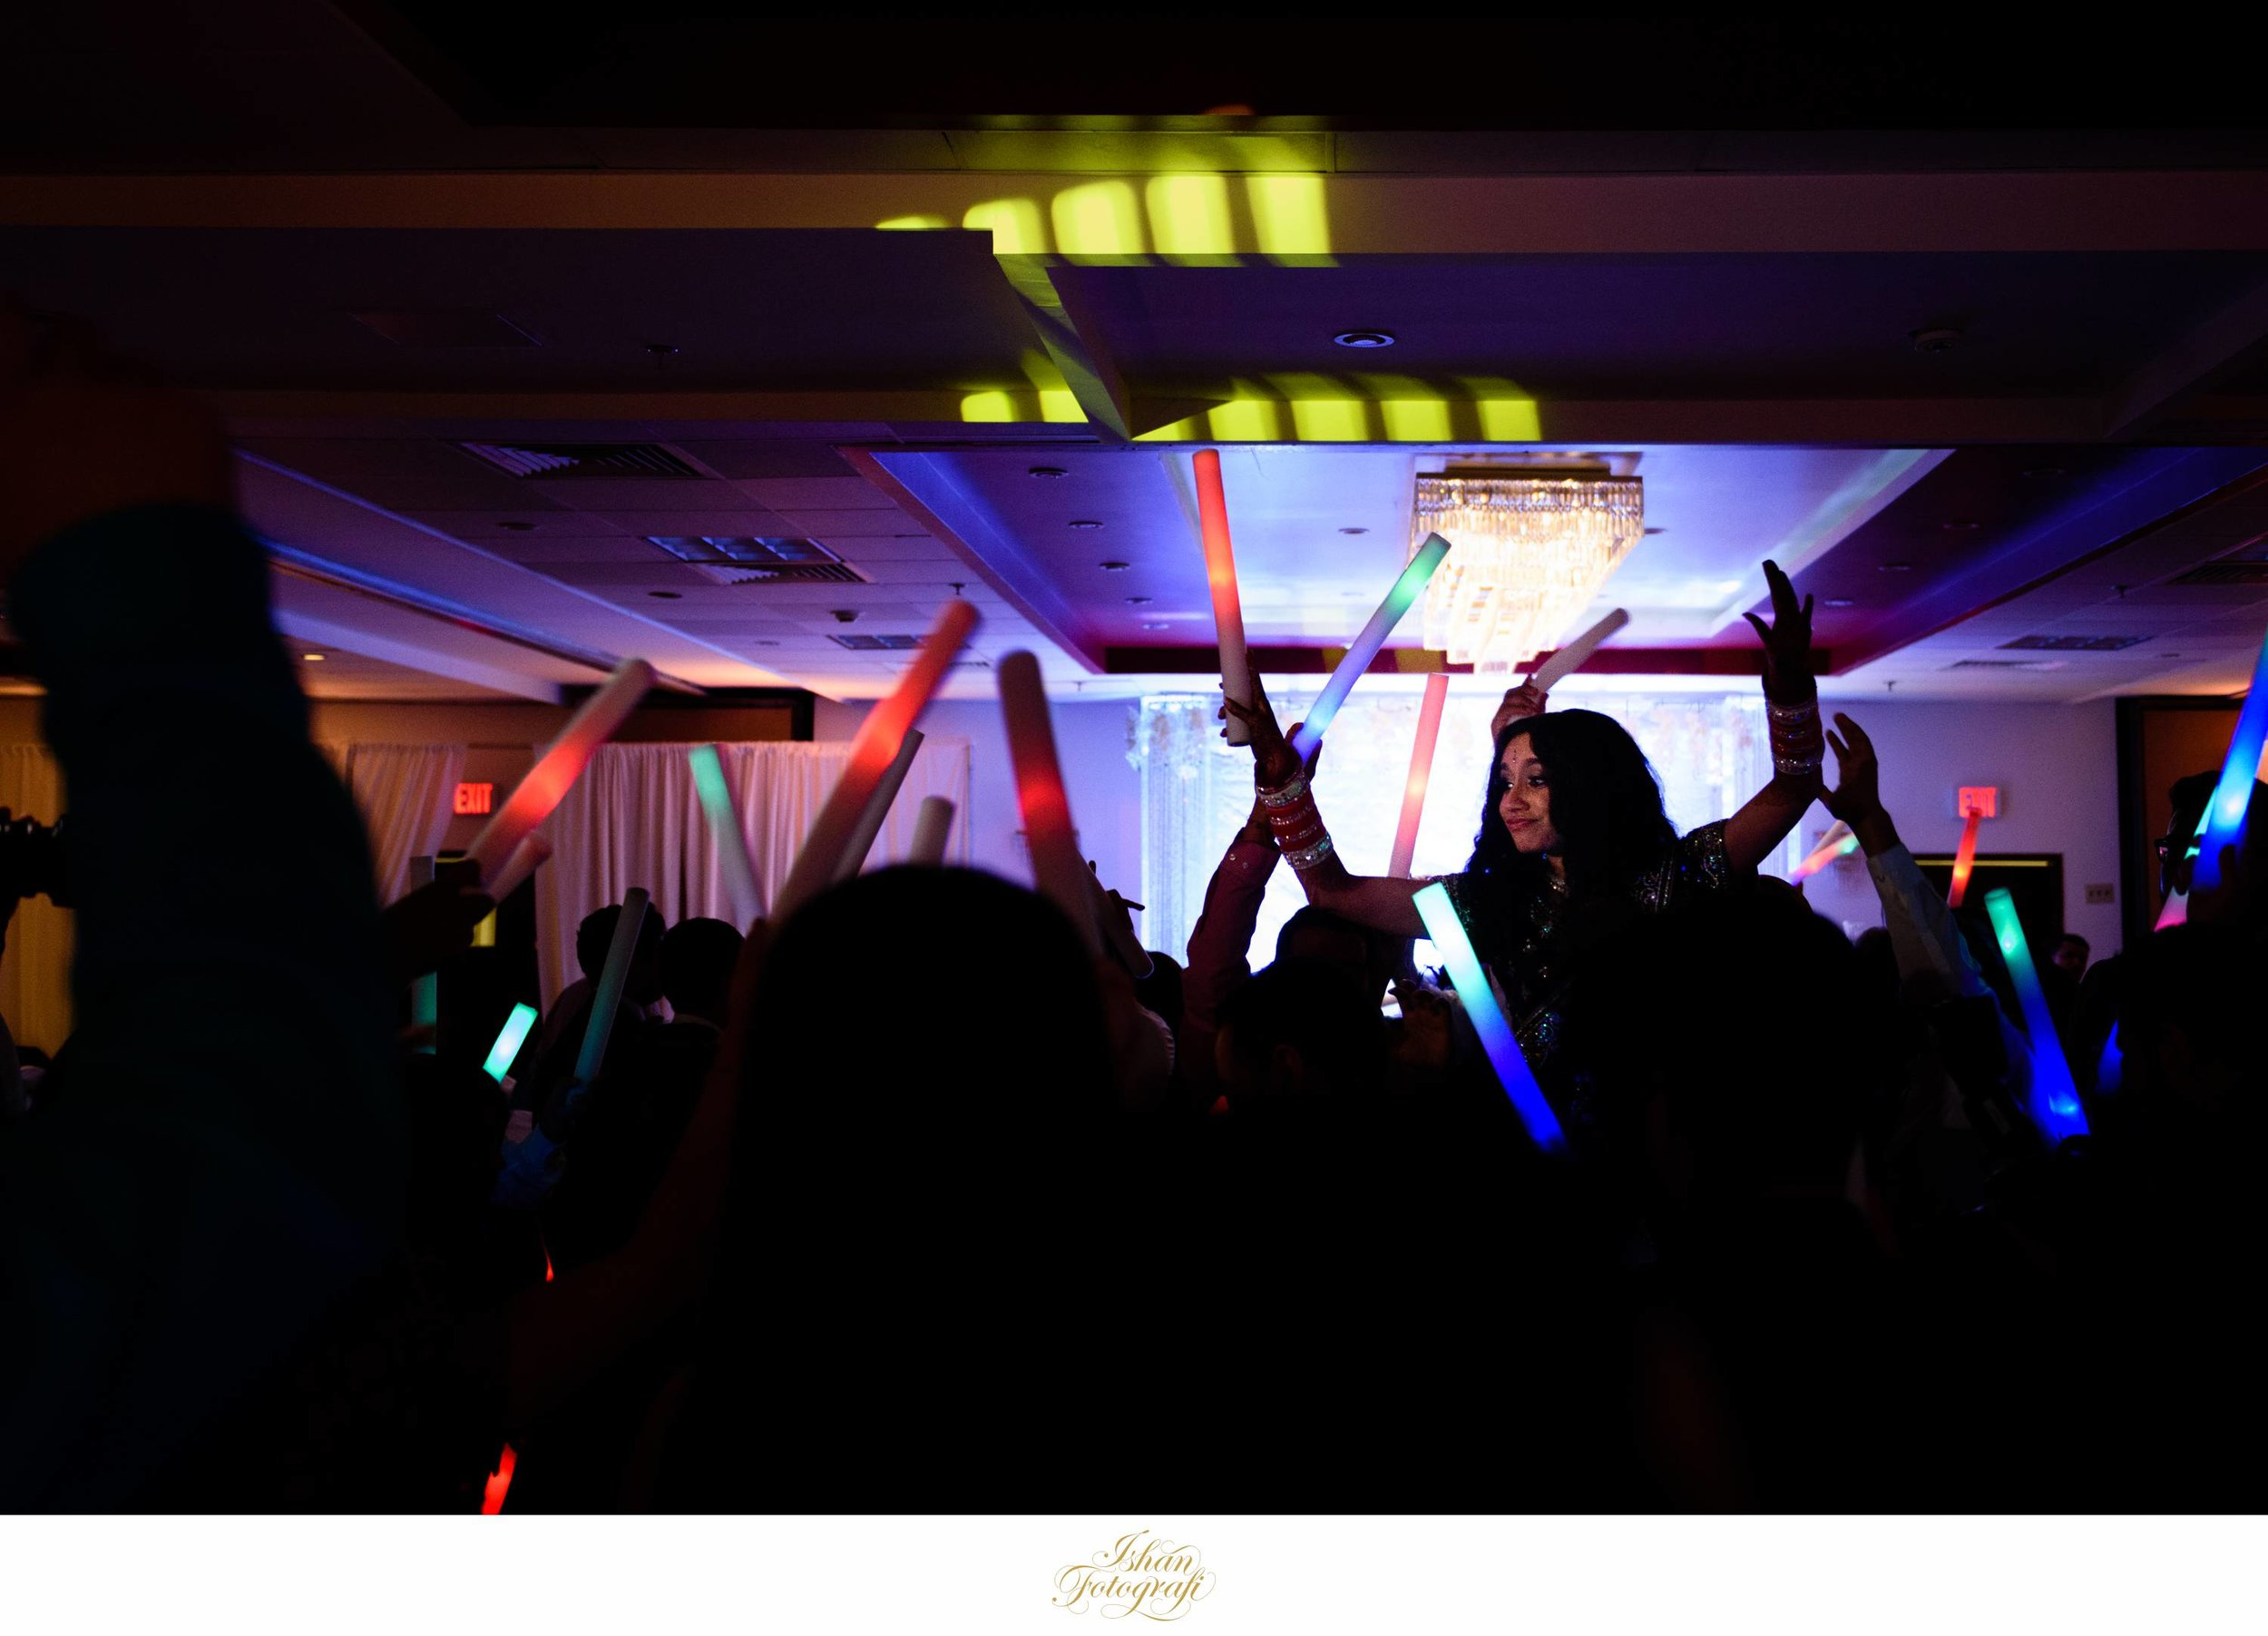 Bringing different props like glow sticks adds a lot of fun and excitement to the wedding reception.